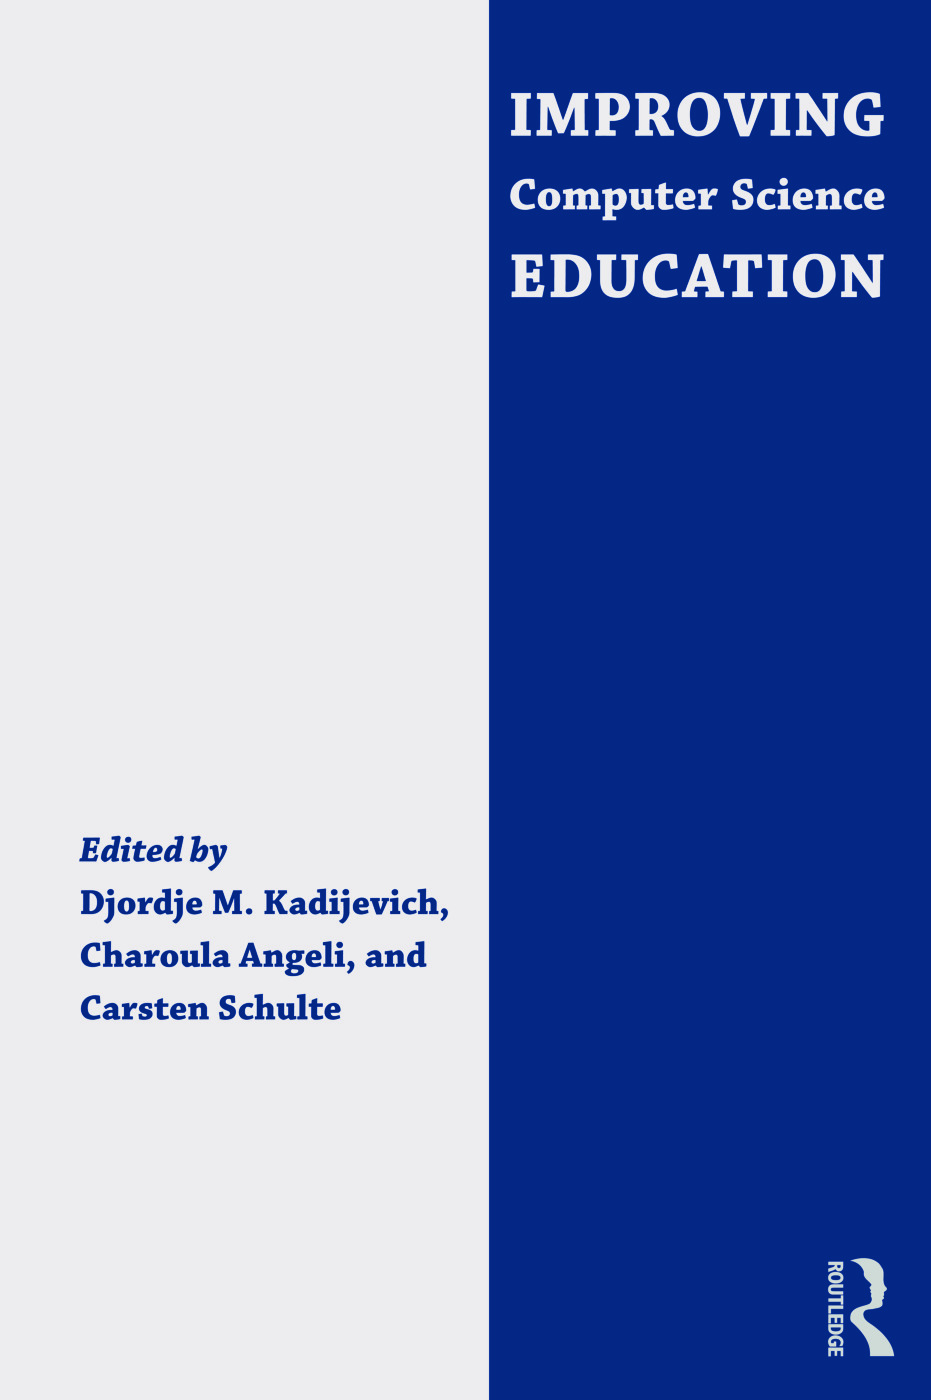 Improving Computer Science Education (Paperback) book cover